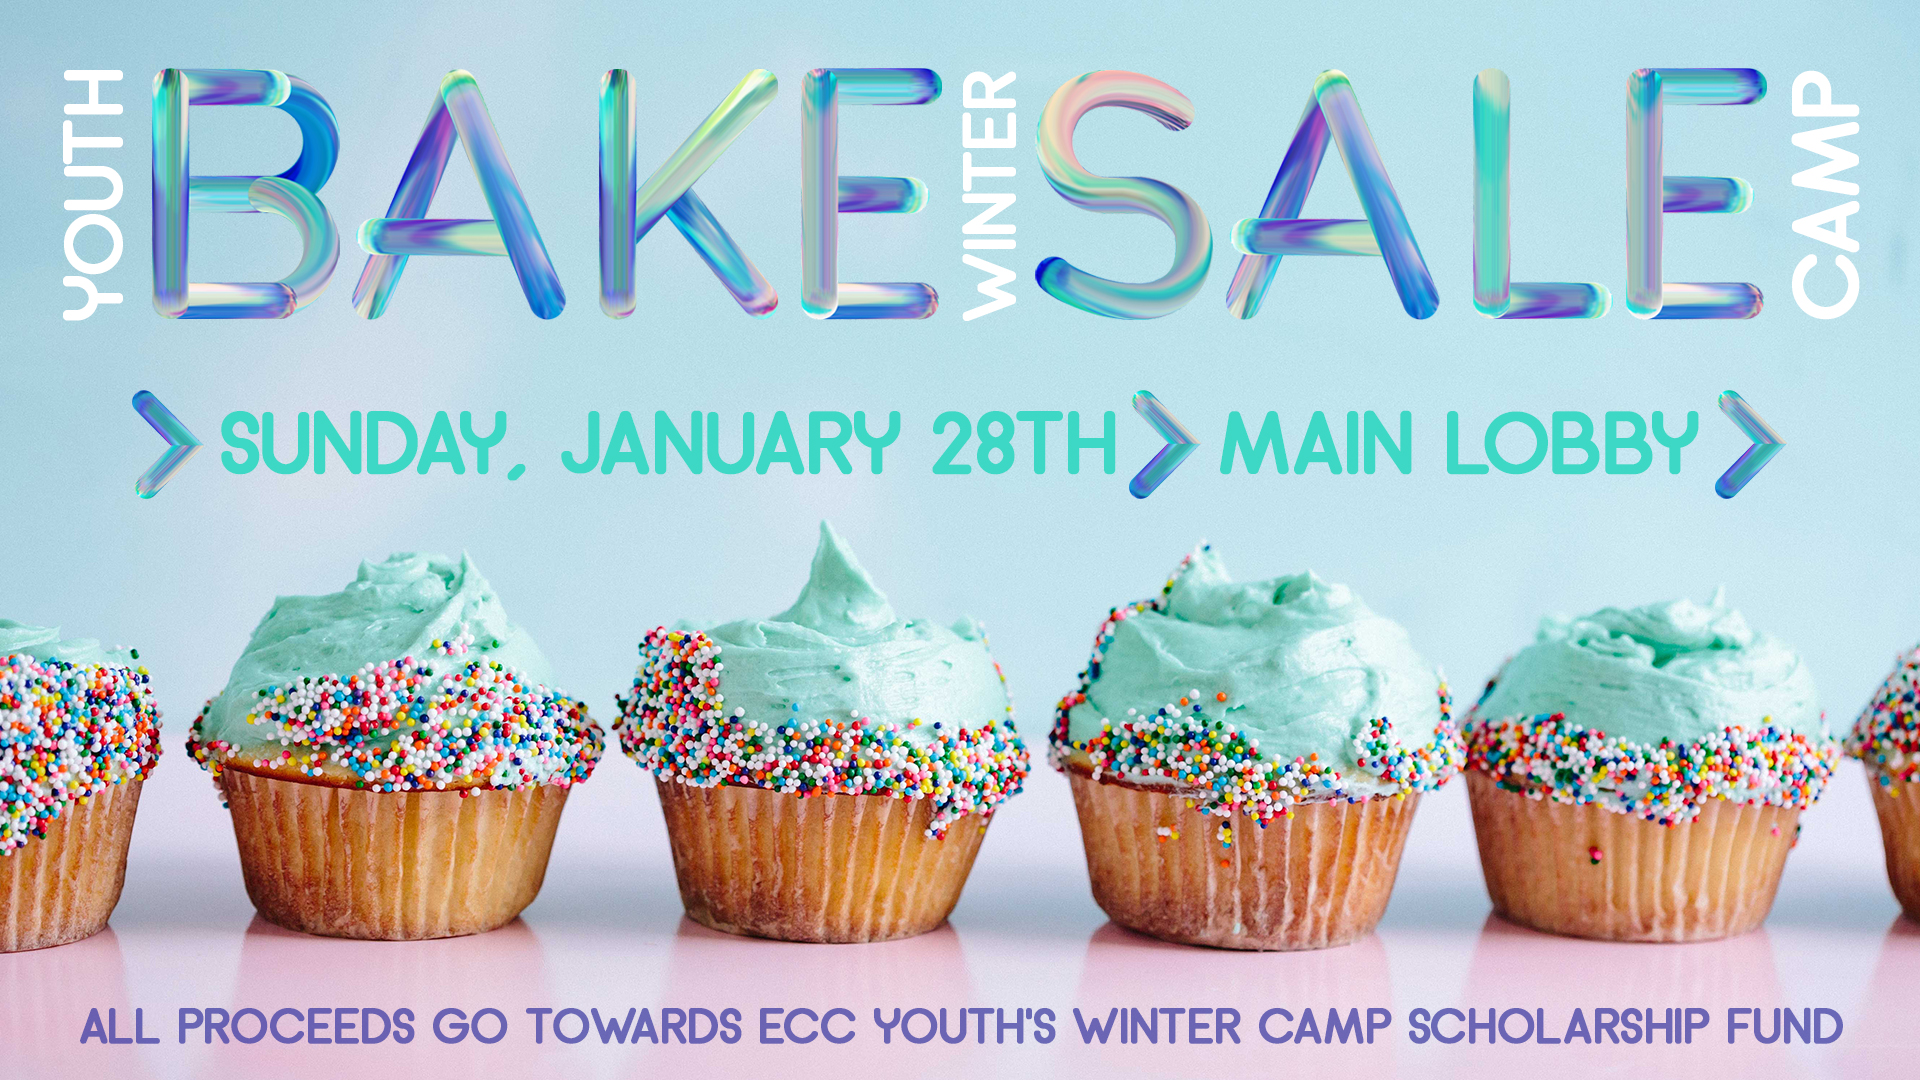 Bake Sale Announcement Slide 1.28.18.jpg